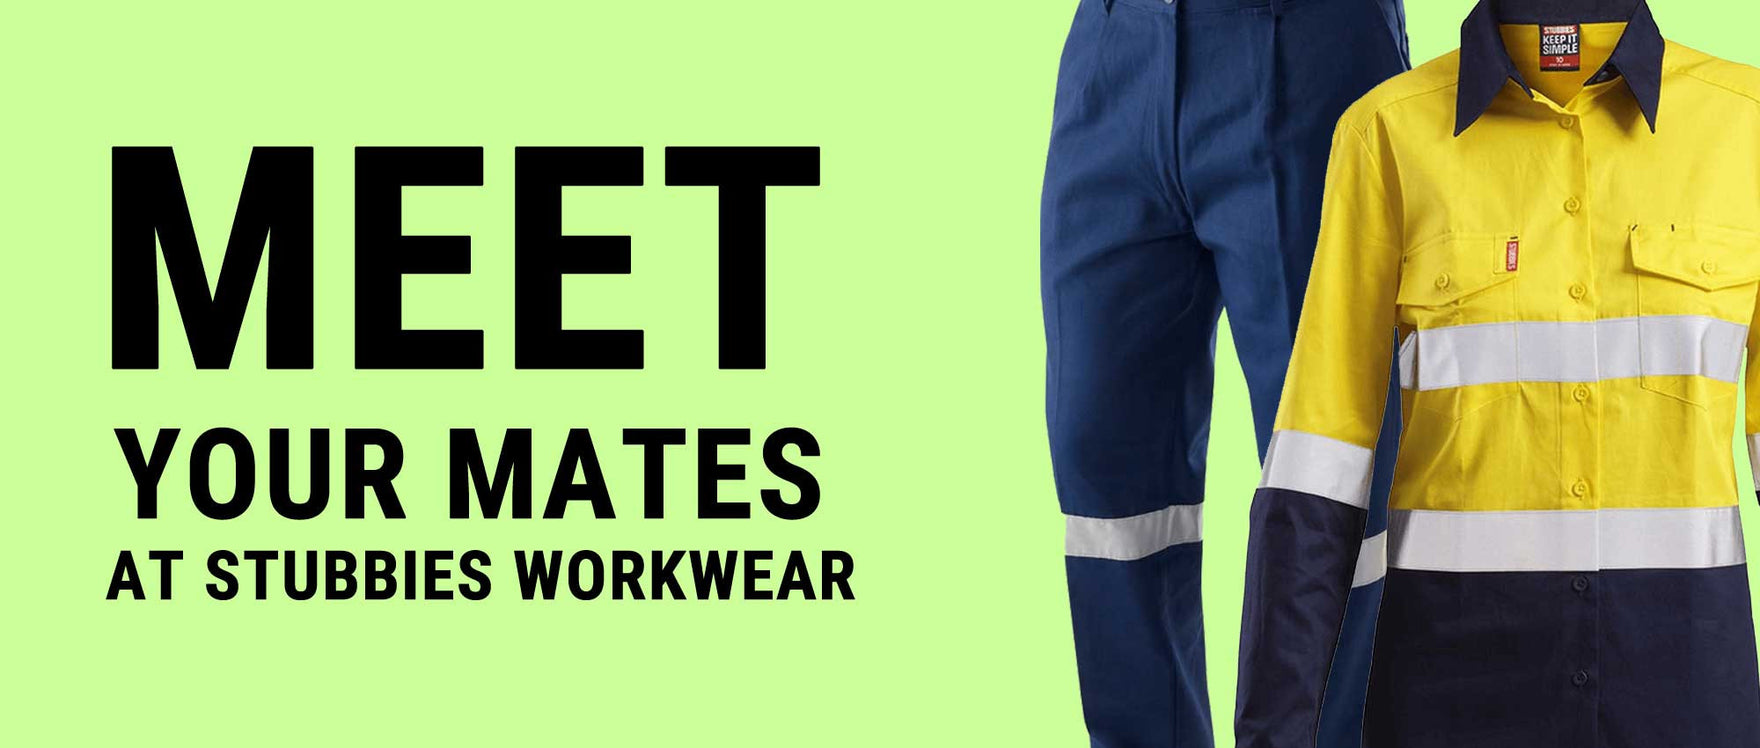 Meet your mates at Stubbies Workwear